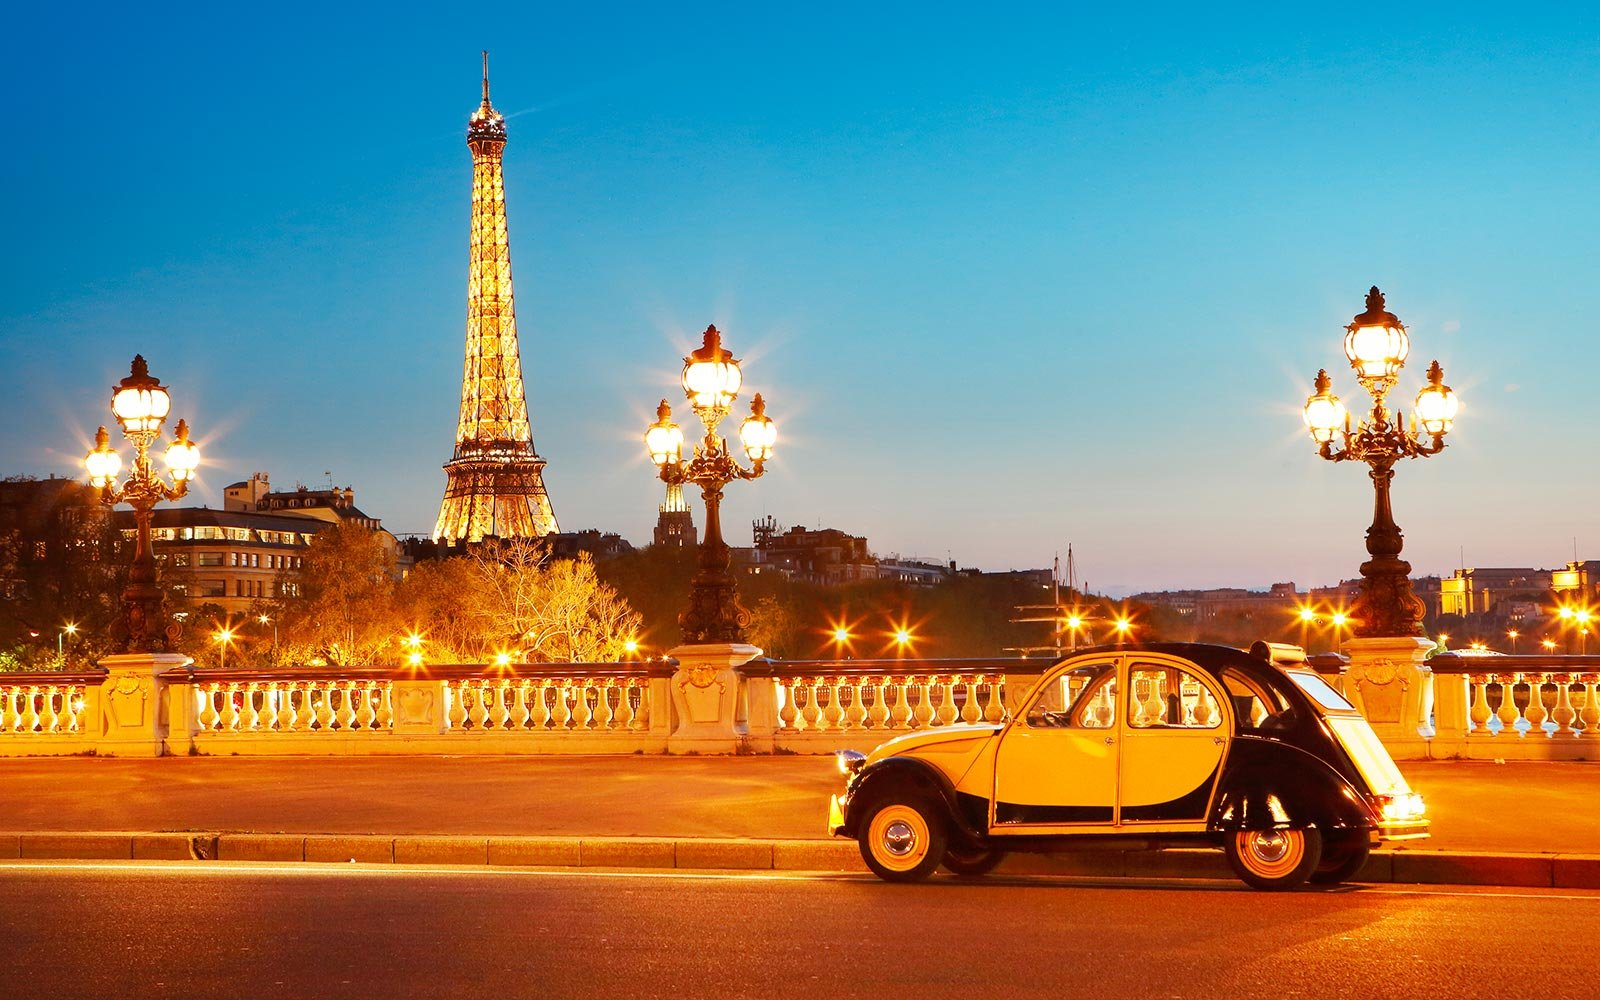 vintage-car-eiffel-tower-paris-EIFFELPM0118.jpg